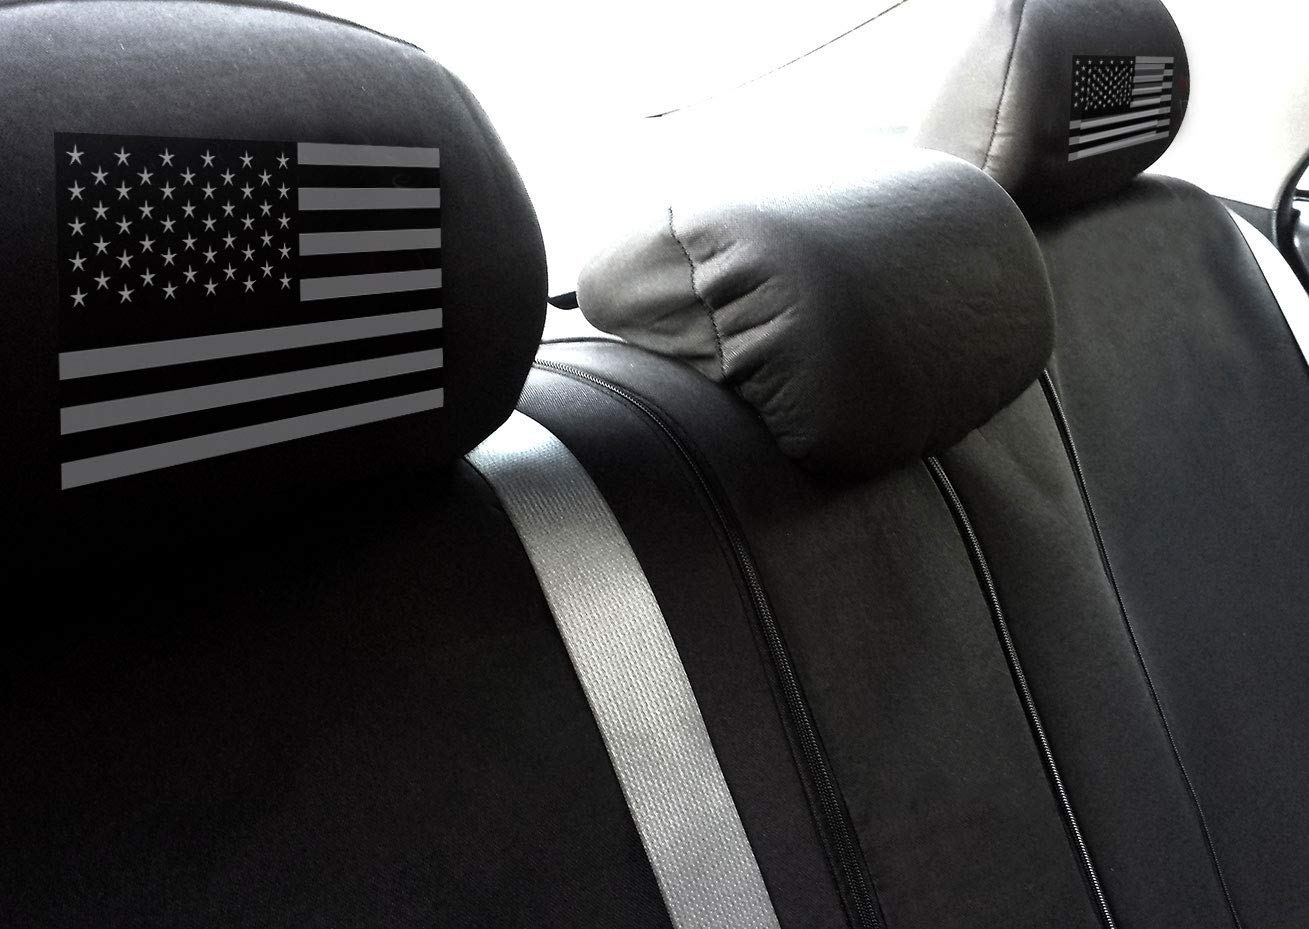 Yupbizauto New US American Flag Print Front and Rear Car Truck SUV Seat Covers Headrest Cover Full Set CEL International